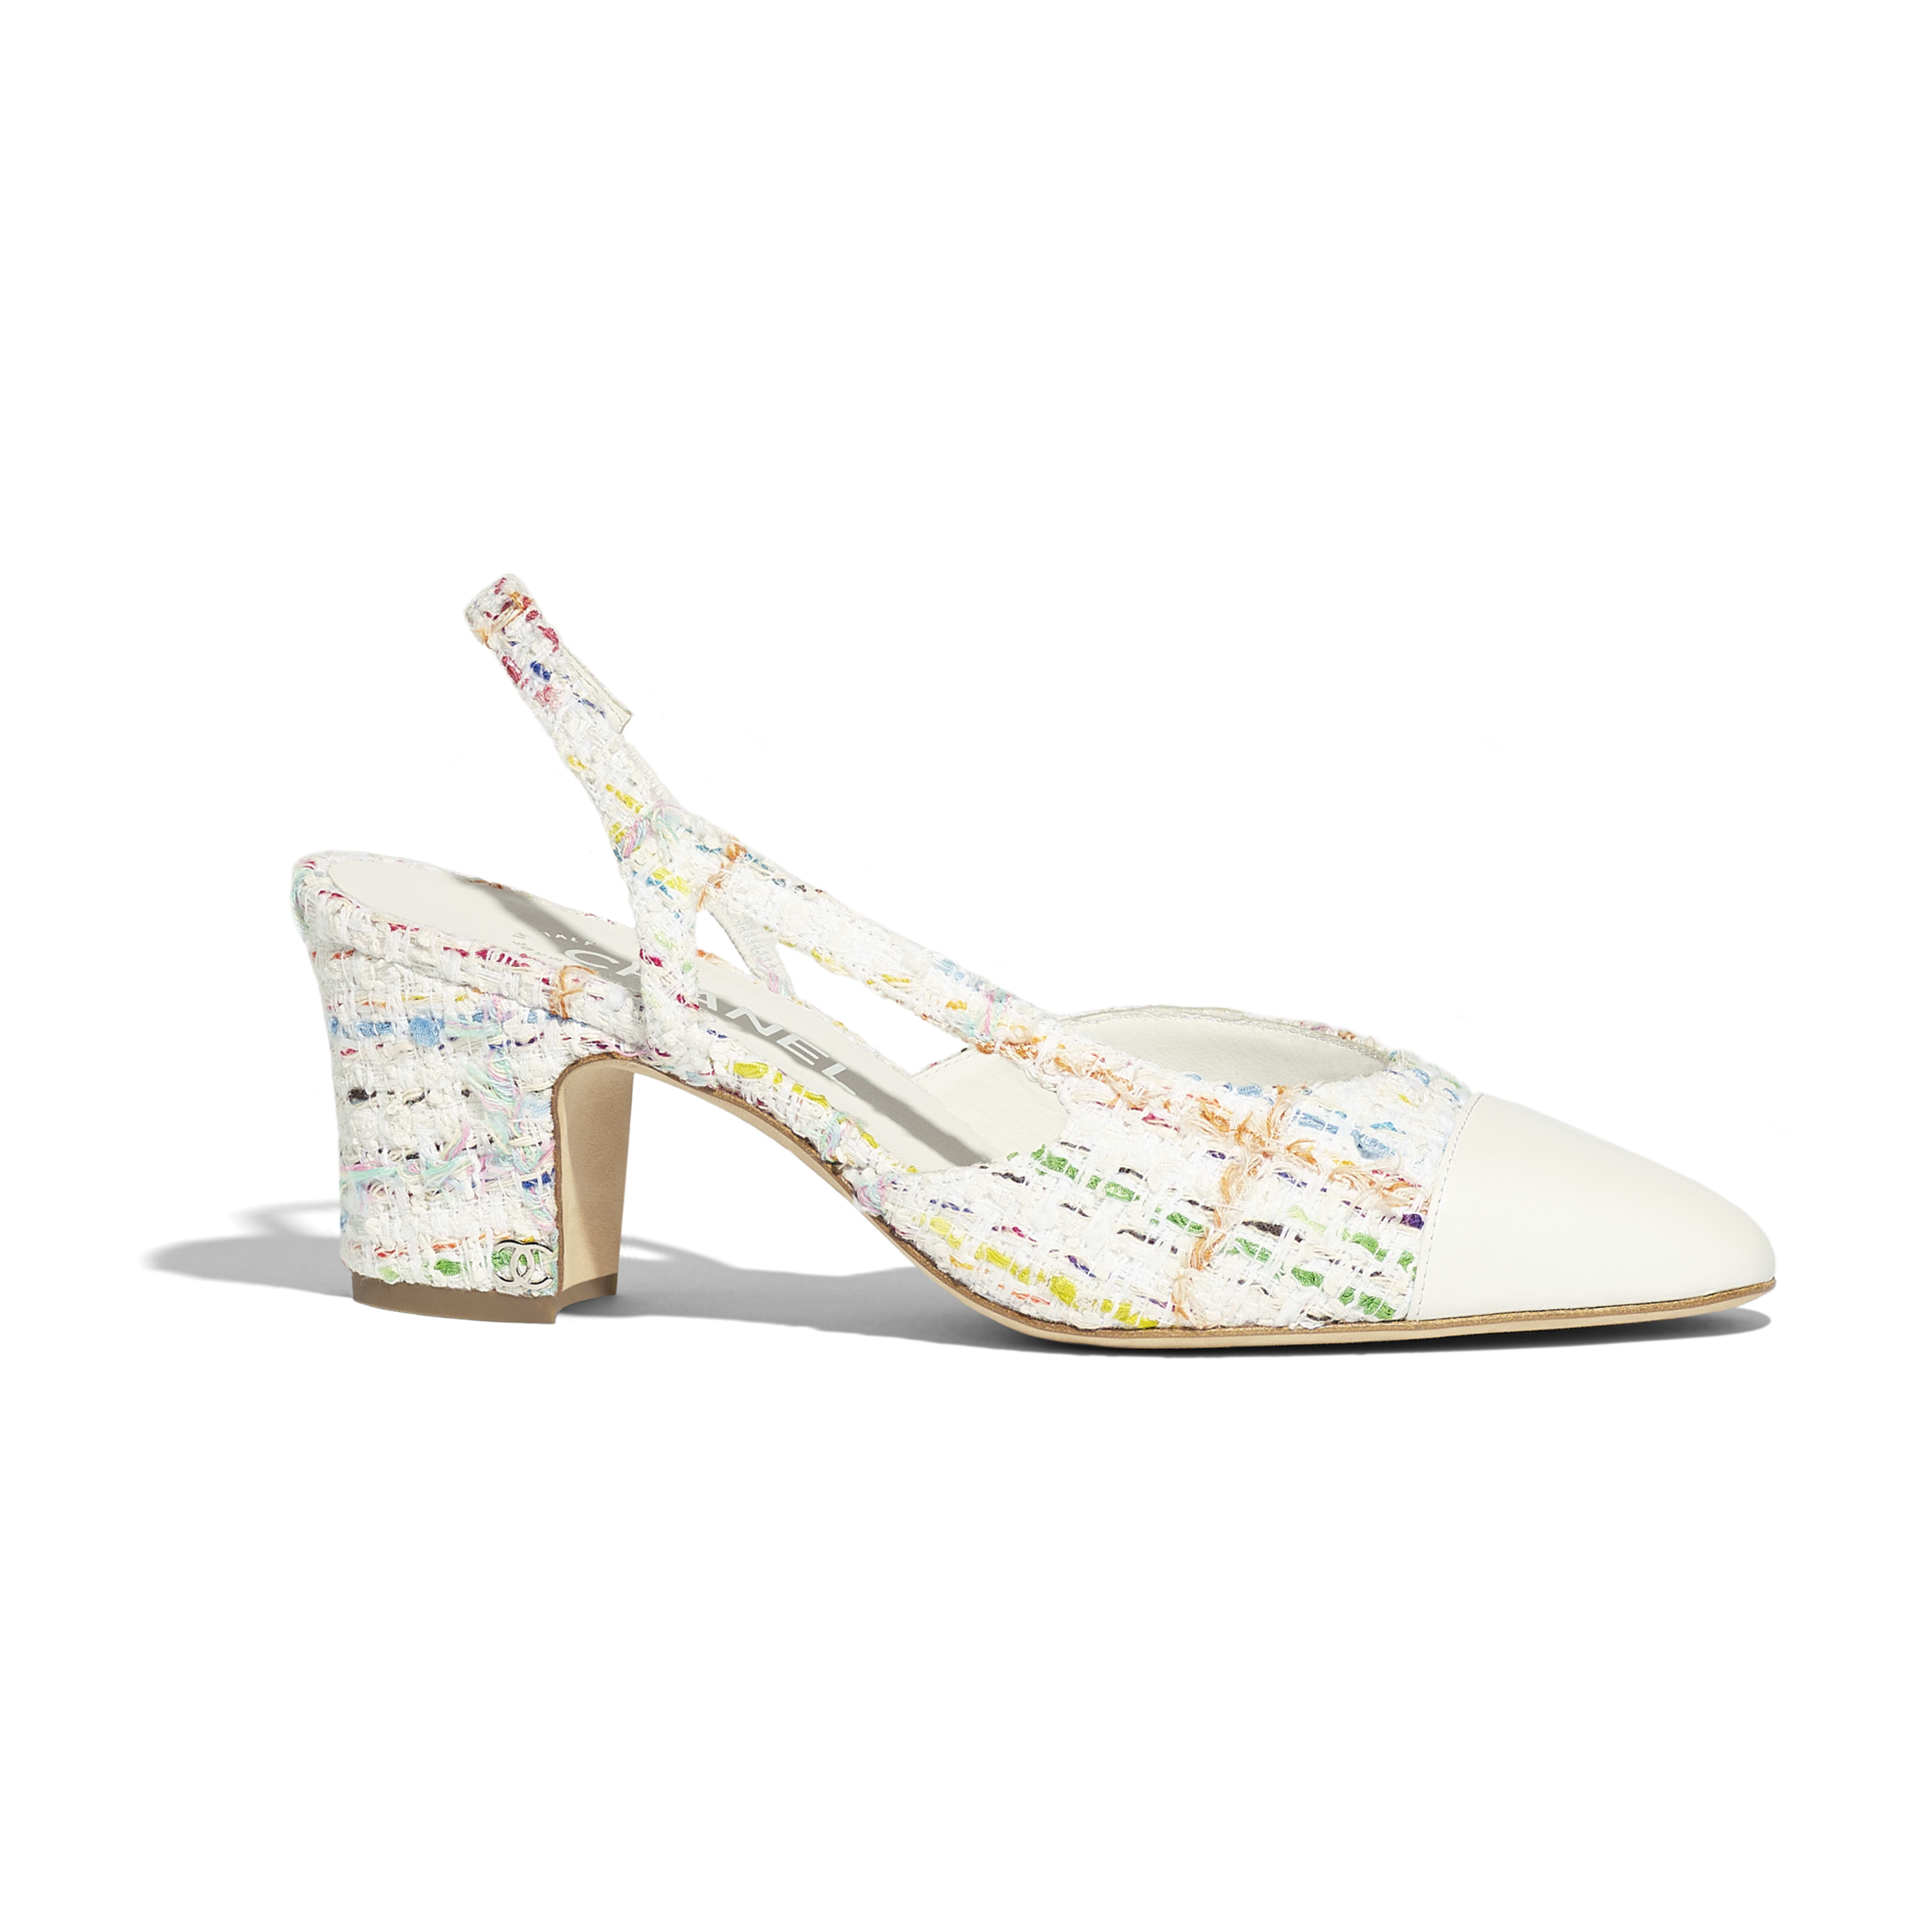 Slingbacks - White, Yellow, Blue & Green - Tweed & Lambskin - Default view - see full sized version